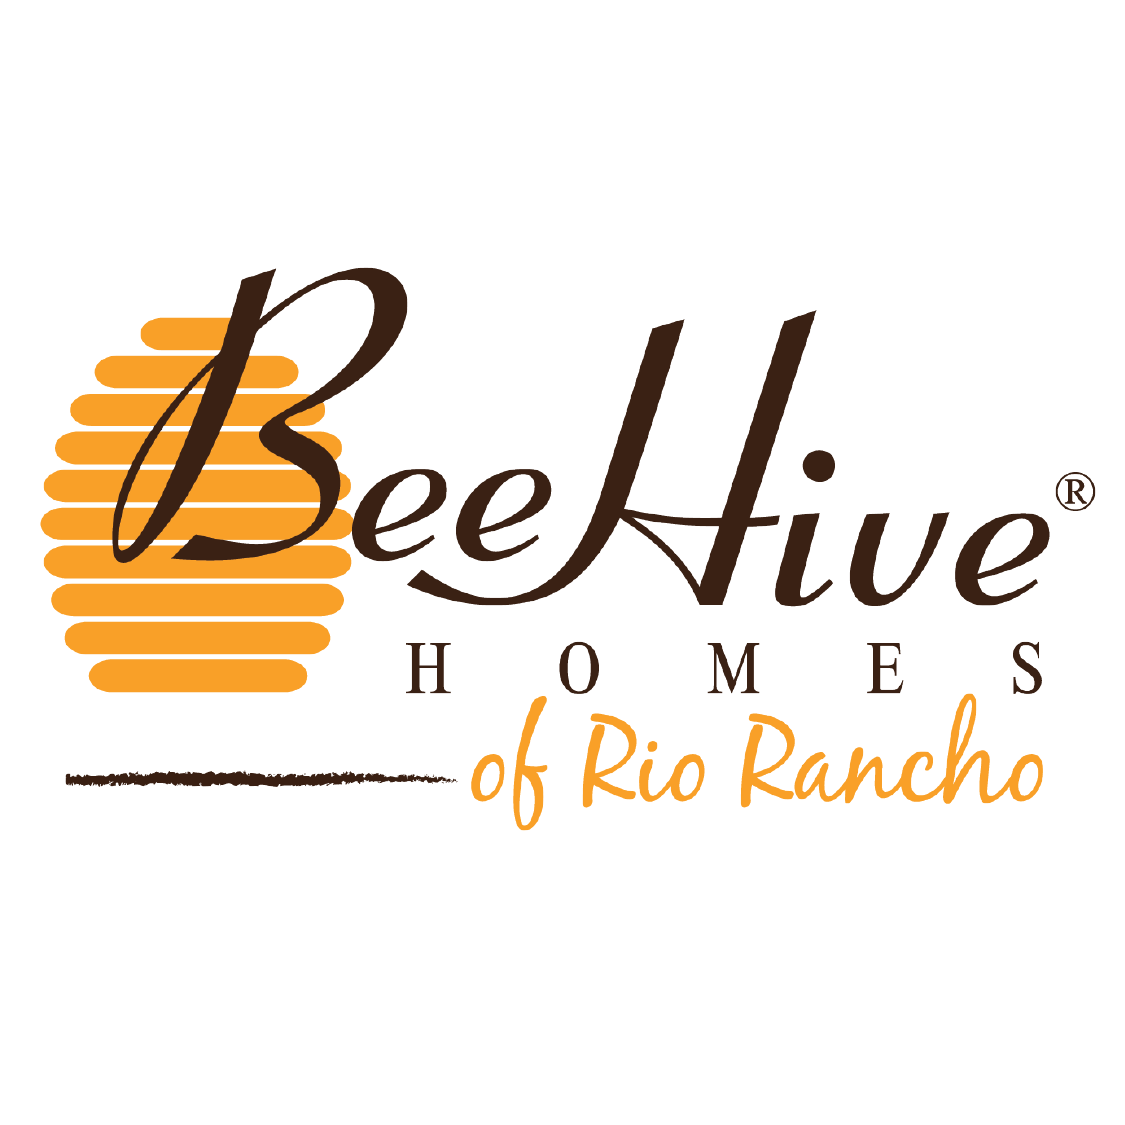 BeeHive Assisted Living Homes of Rio Rancho NM #1 - Dementia Care & Memory Care